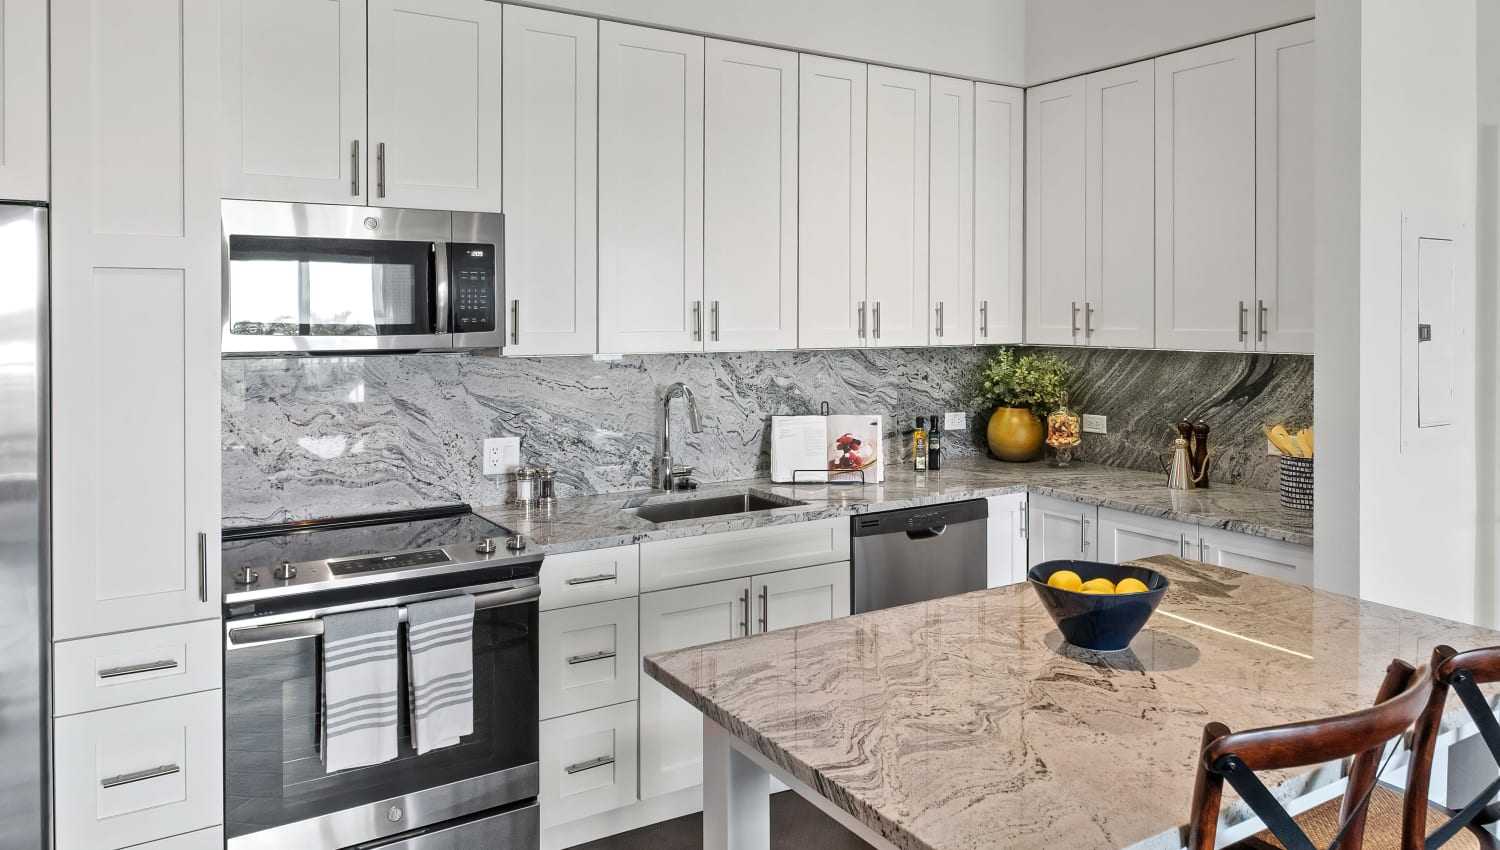 Beautiful model kitchen with adaptable island and stainless steel appliances at Town Lantana in Lantana, Florida